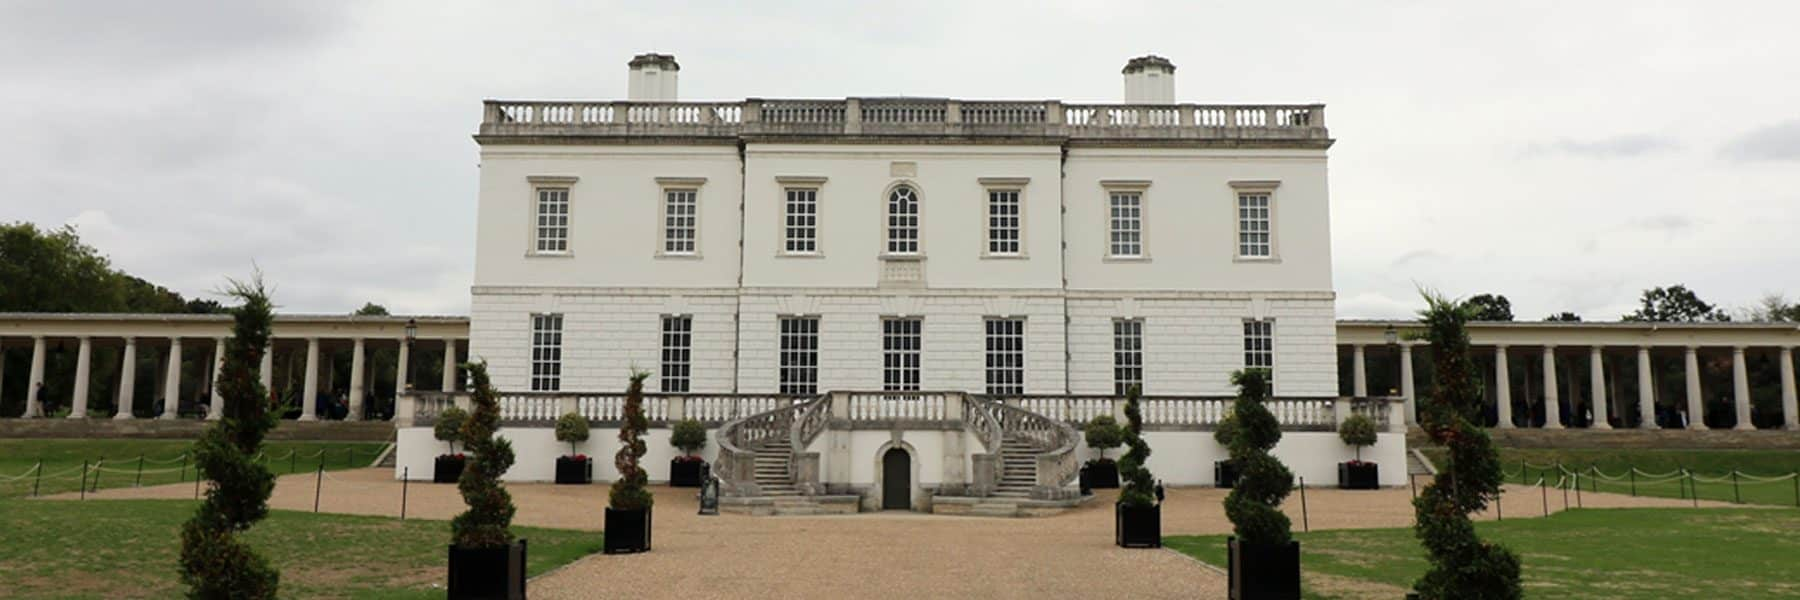 The Queens House, Royal Borough of Greenwich